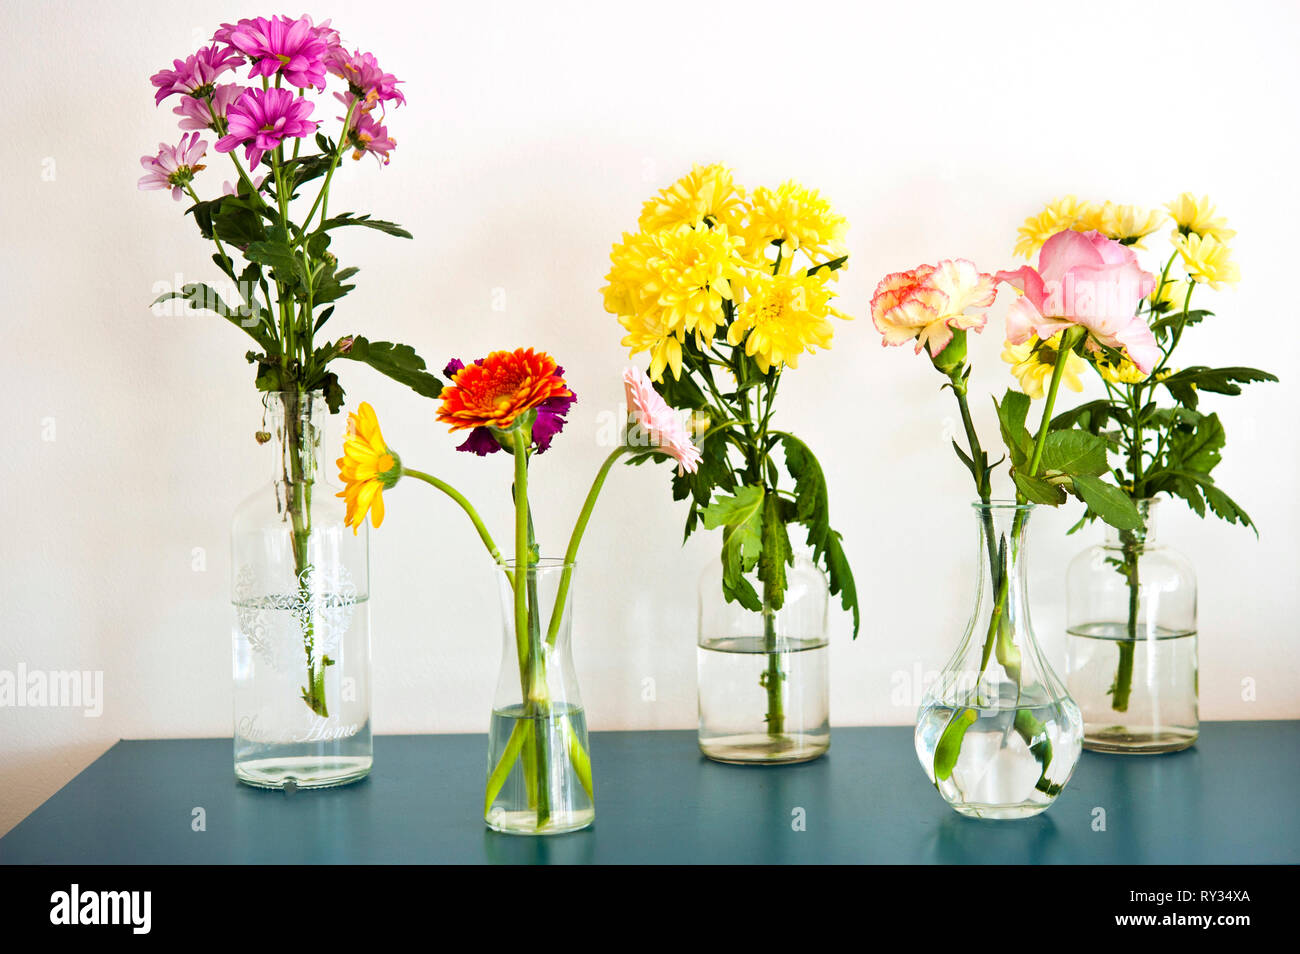 various colorful flowers in differently shaped vases - Stock Image